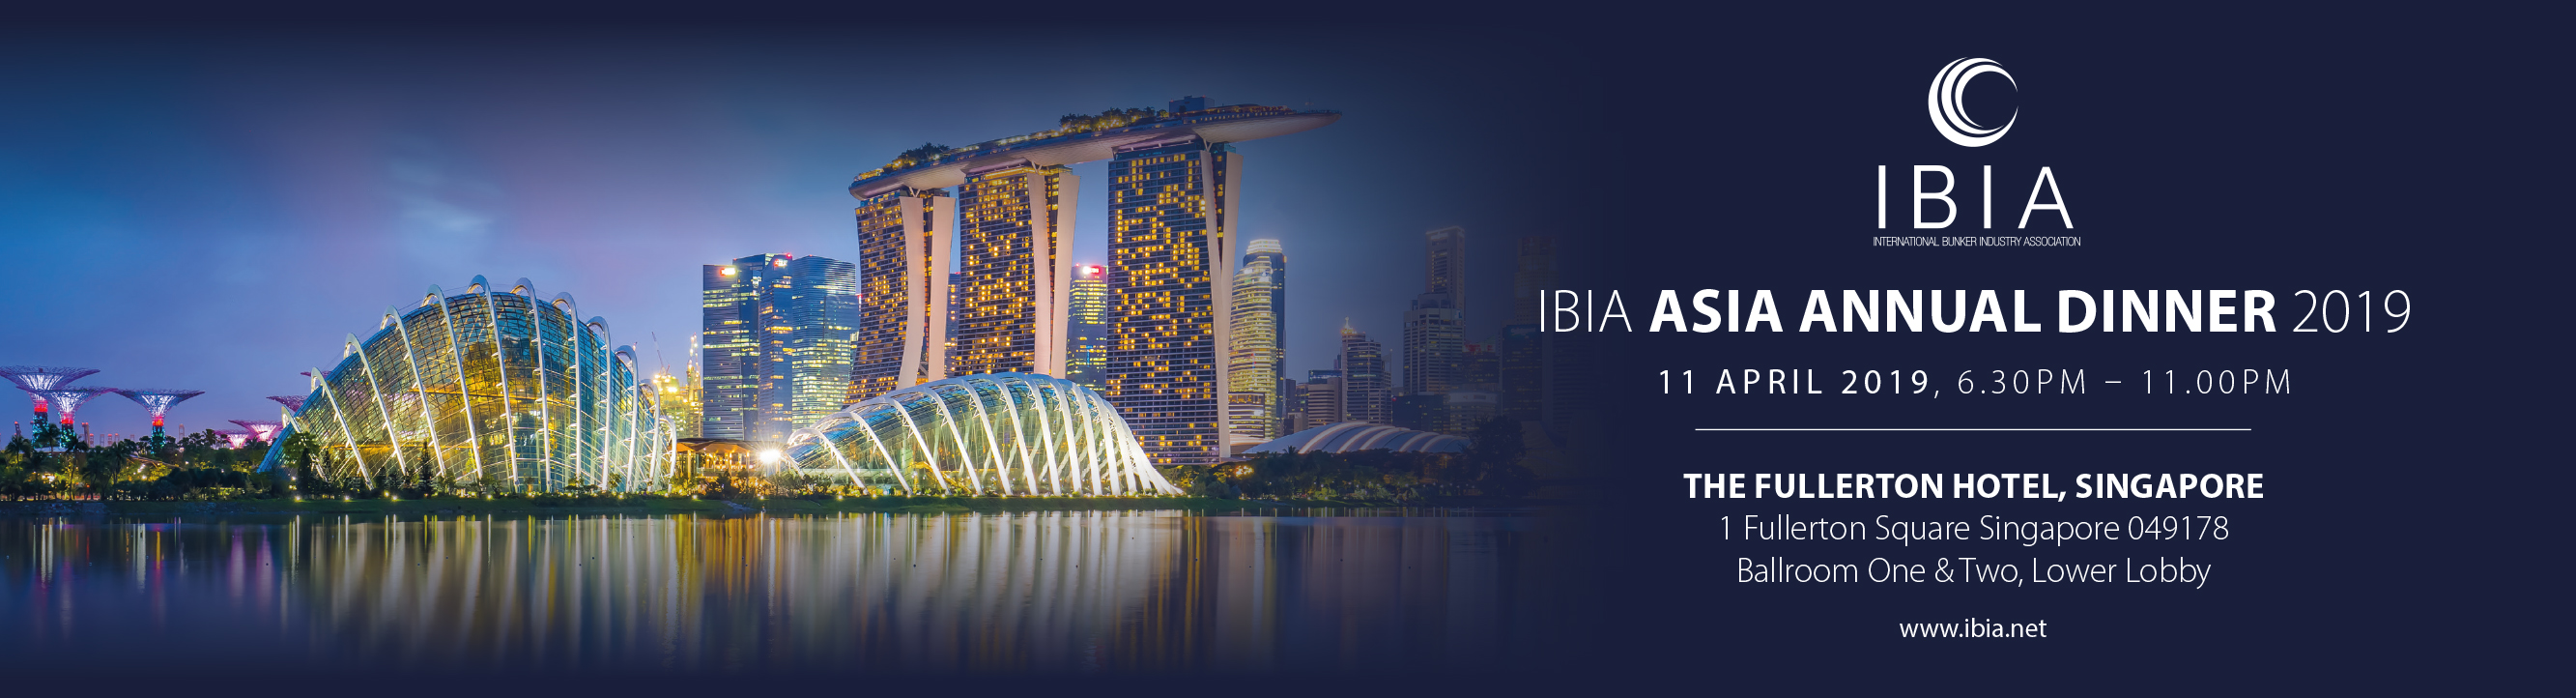 The IBIA Asia Annual Dinner 2019 Banner Image